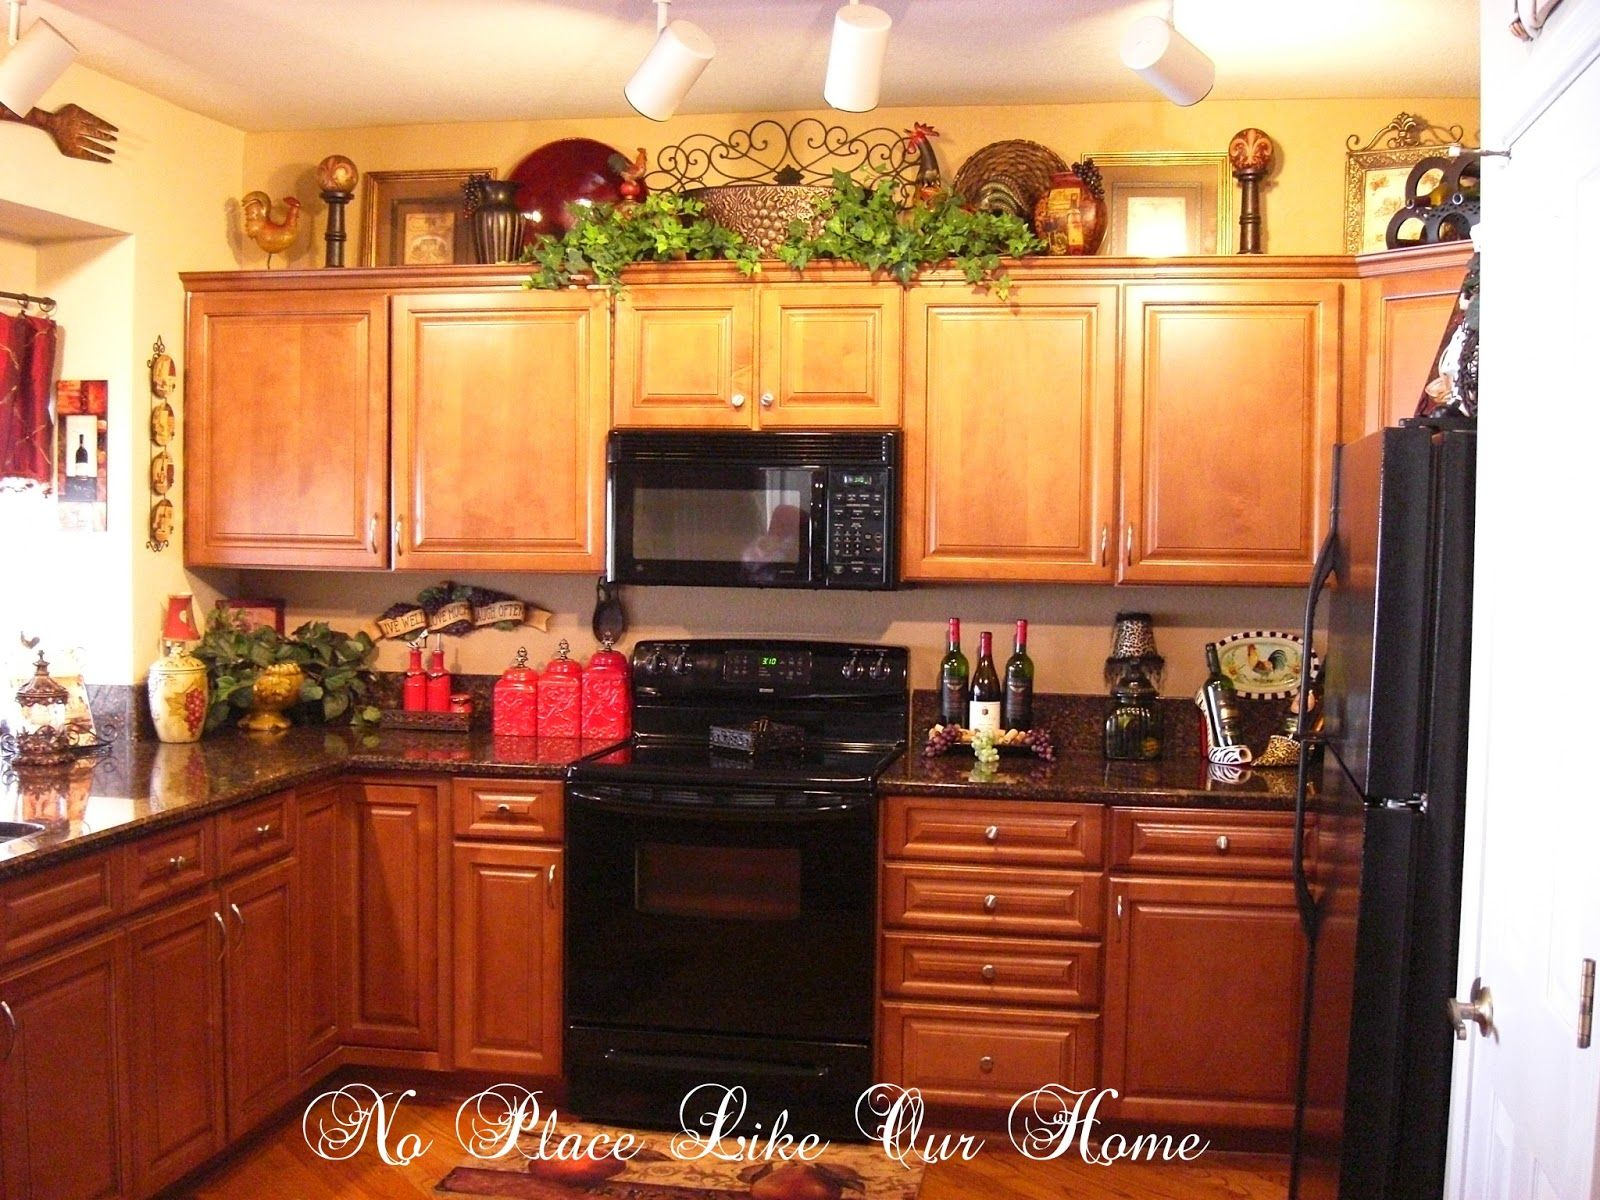 No Place Like Our Home New Kitchen Vignette S Decorating Above Kitchen Cabinets Wine Decor Kitchen Kitchen Cabinets Decor